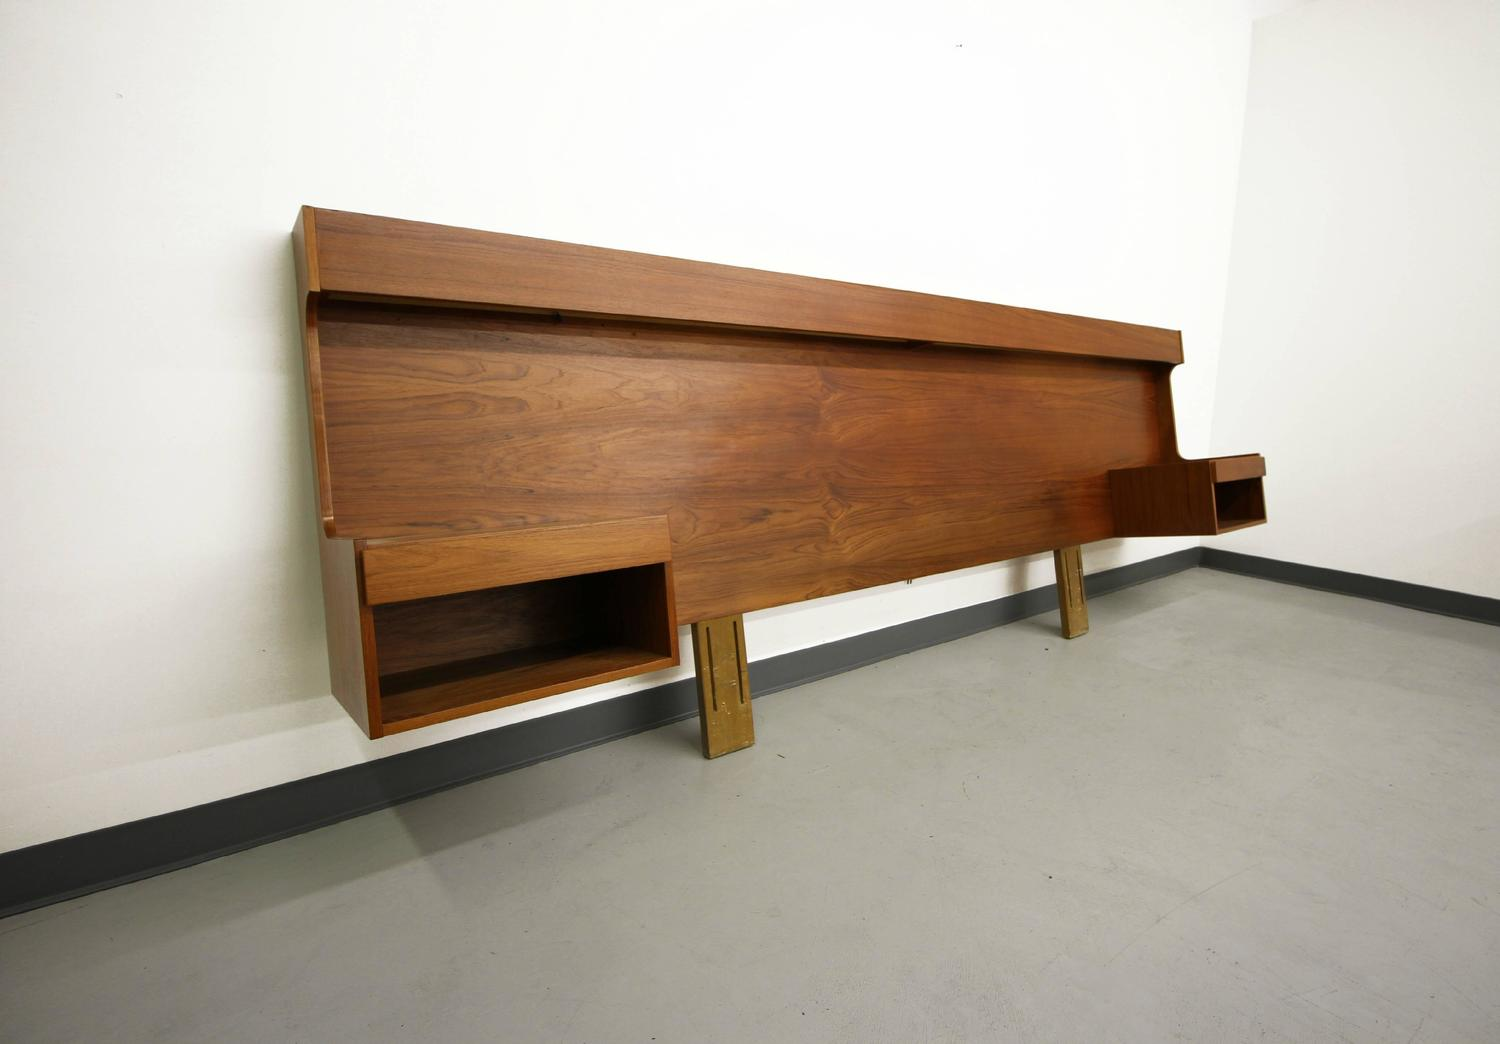 Danish Teak King Size Headboard with Lights and Floating Nightstands at 1stdibs